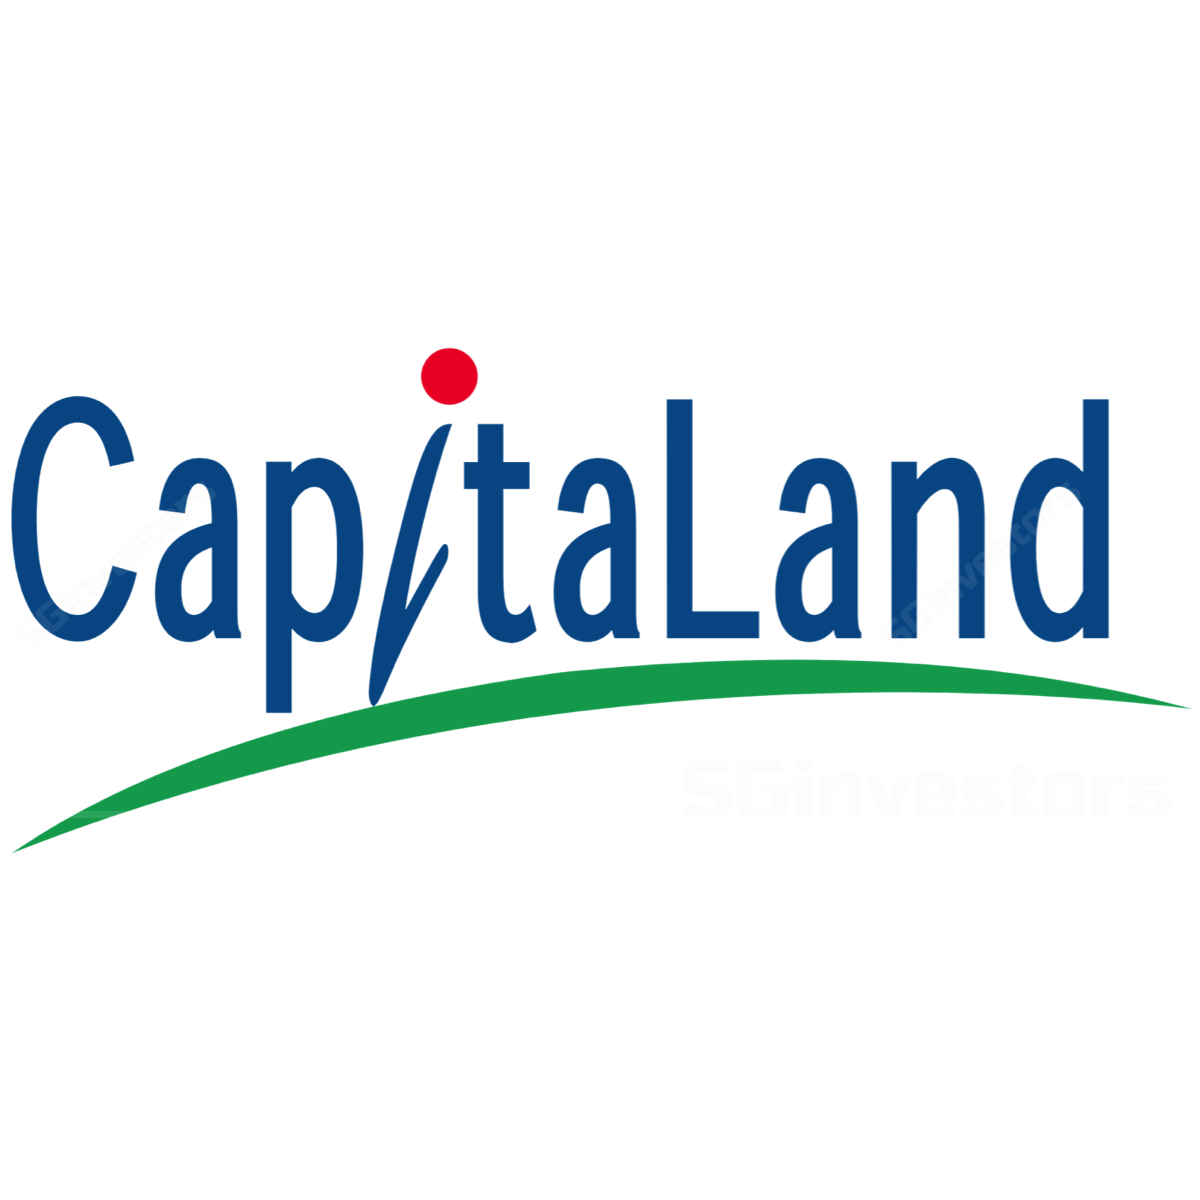 CapitaLand Limited - Phillip Securities 2017-04-27: More Recurring Income Expected